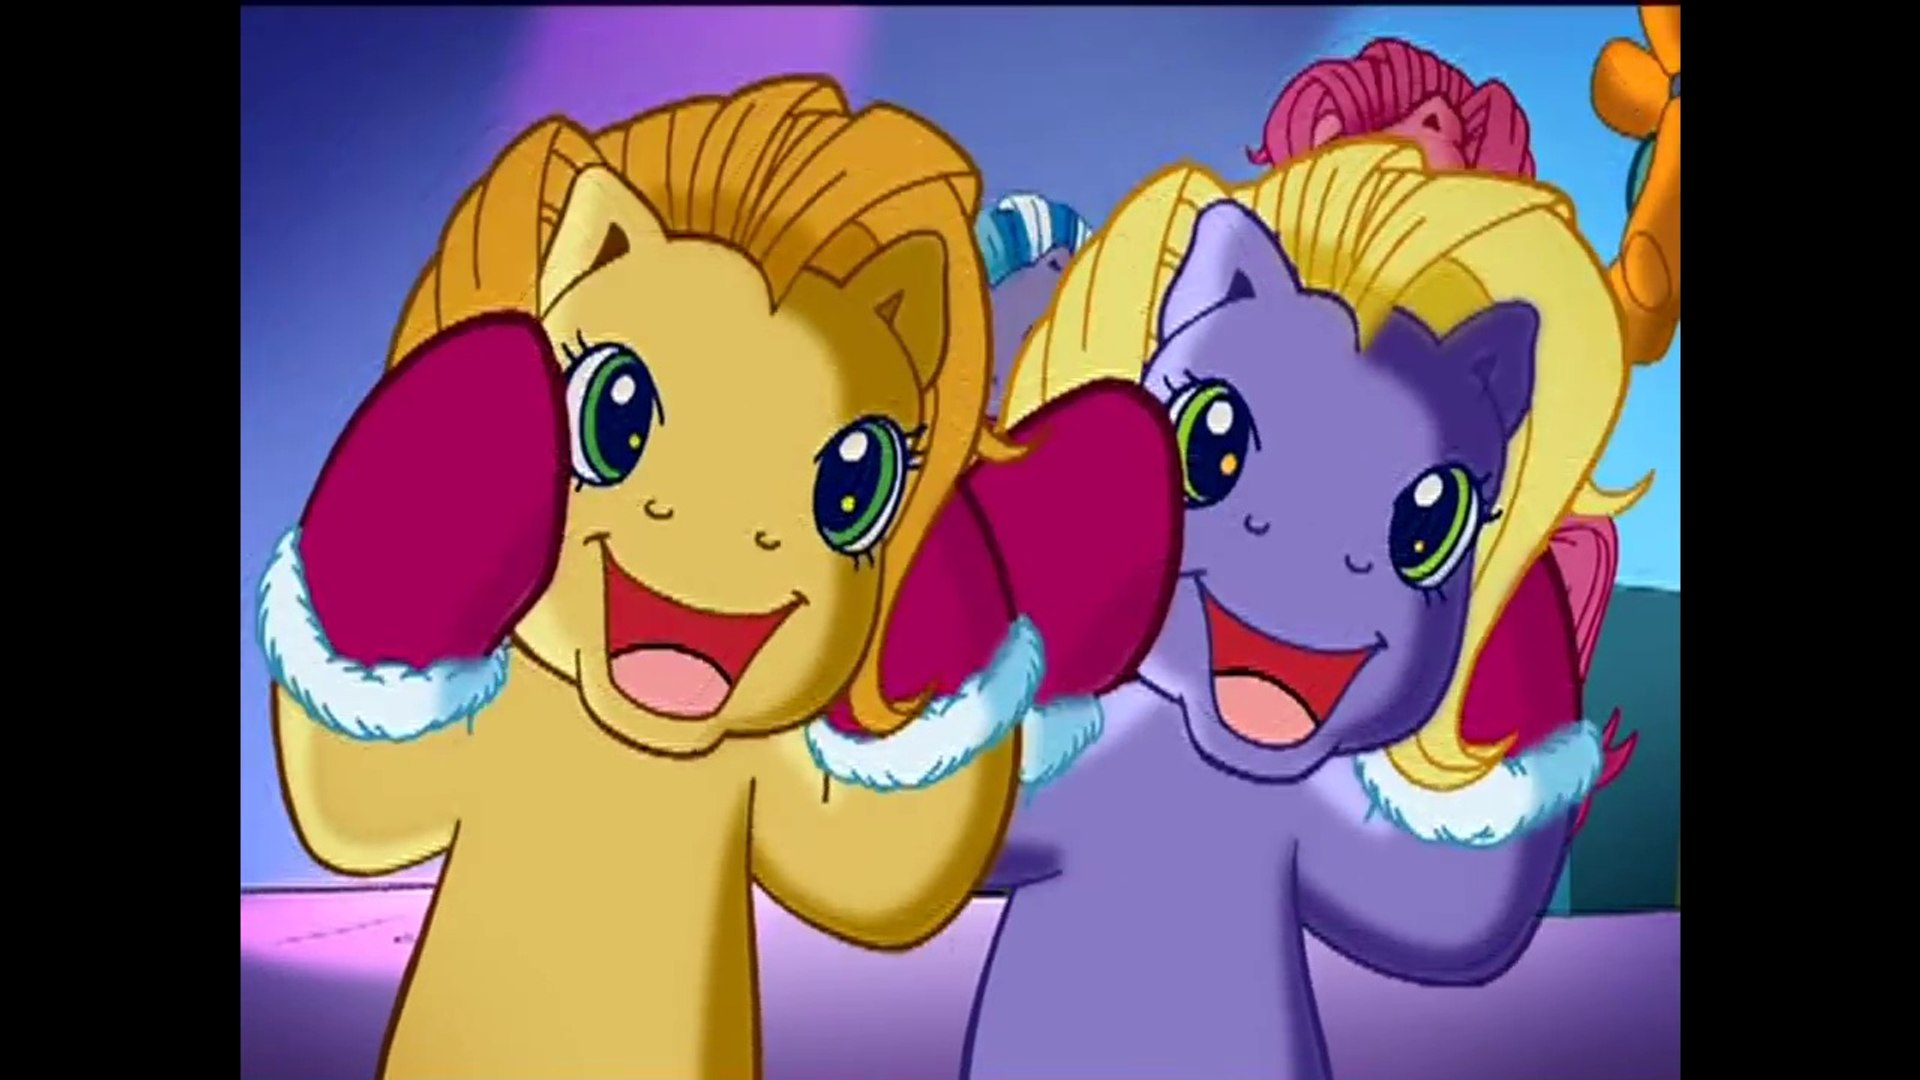 Mlp Christmas.My Little Pony A Very Minty Christmas 2005 Clip Nothing Says Christmas Like A Pair Of Socks